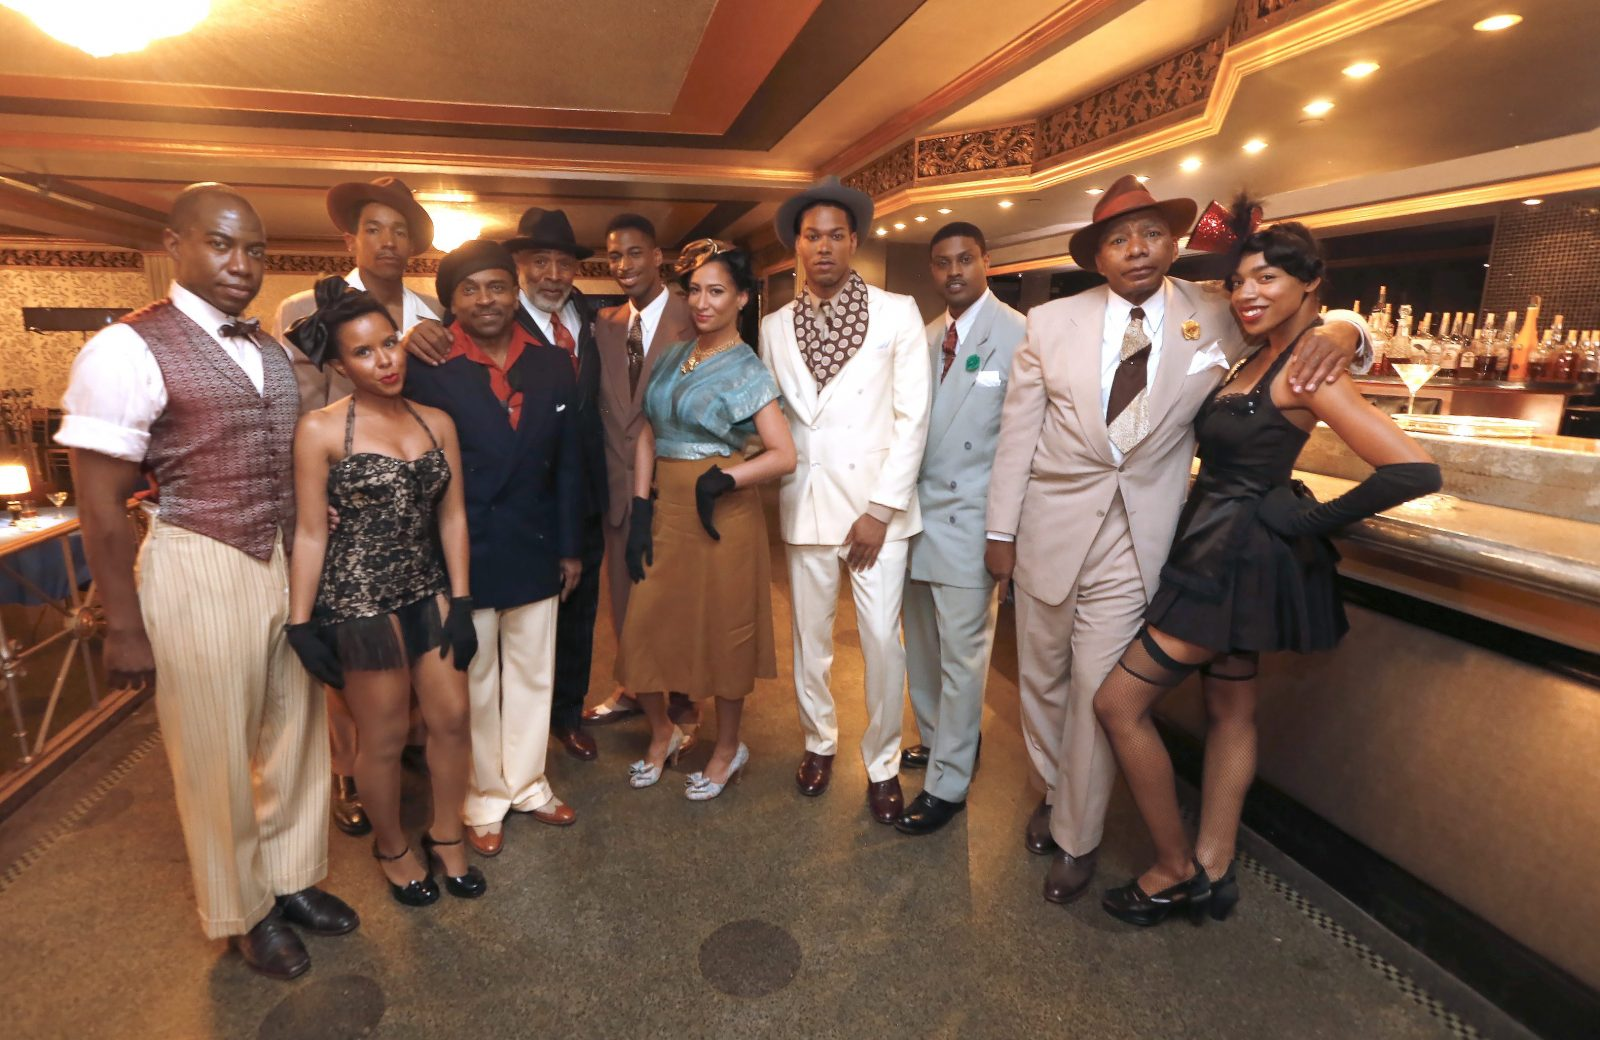 Some of the local extras visit between takes. The Hollywood crews turned the Statler's Rendezvous Room into the famed Milton's Play House in 1941 Harlem and were filming there all day today, Wednesday, June 8, 2016. (Robert Kirkham/Buffalo News)